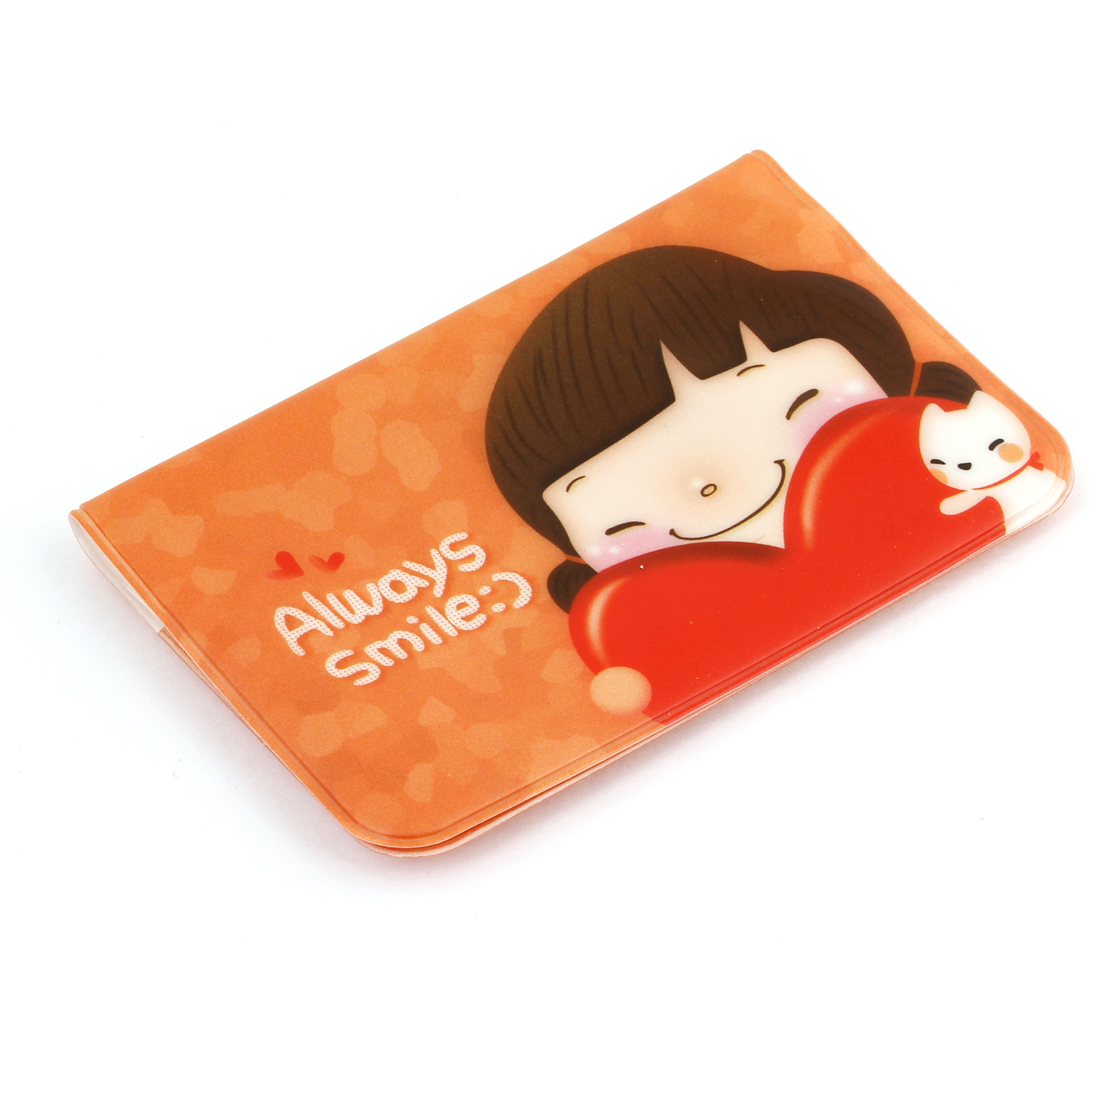 Plastic Orange Cover Cute Girl Pattern 24 Capacity VIP Name Card Case Holder